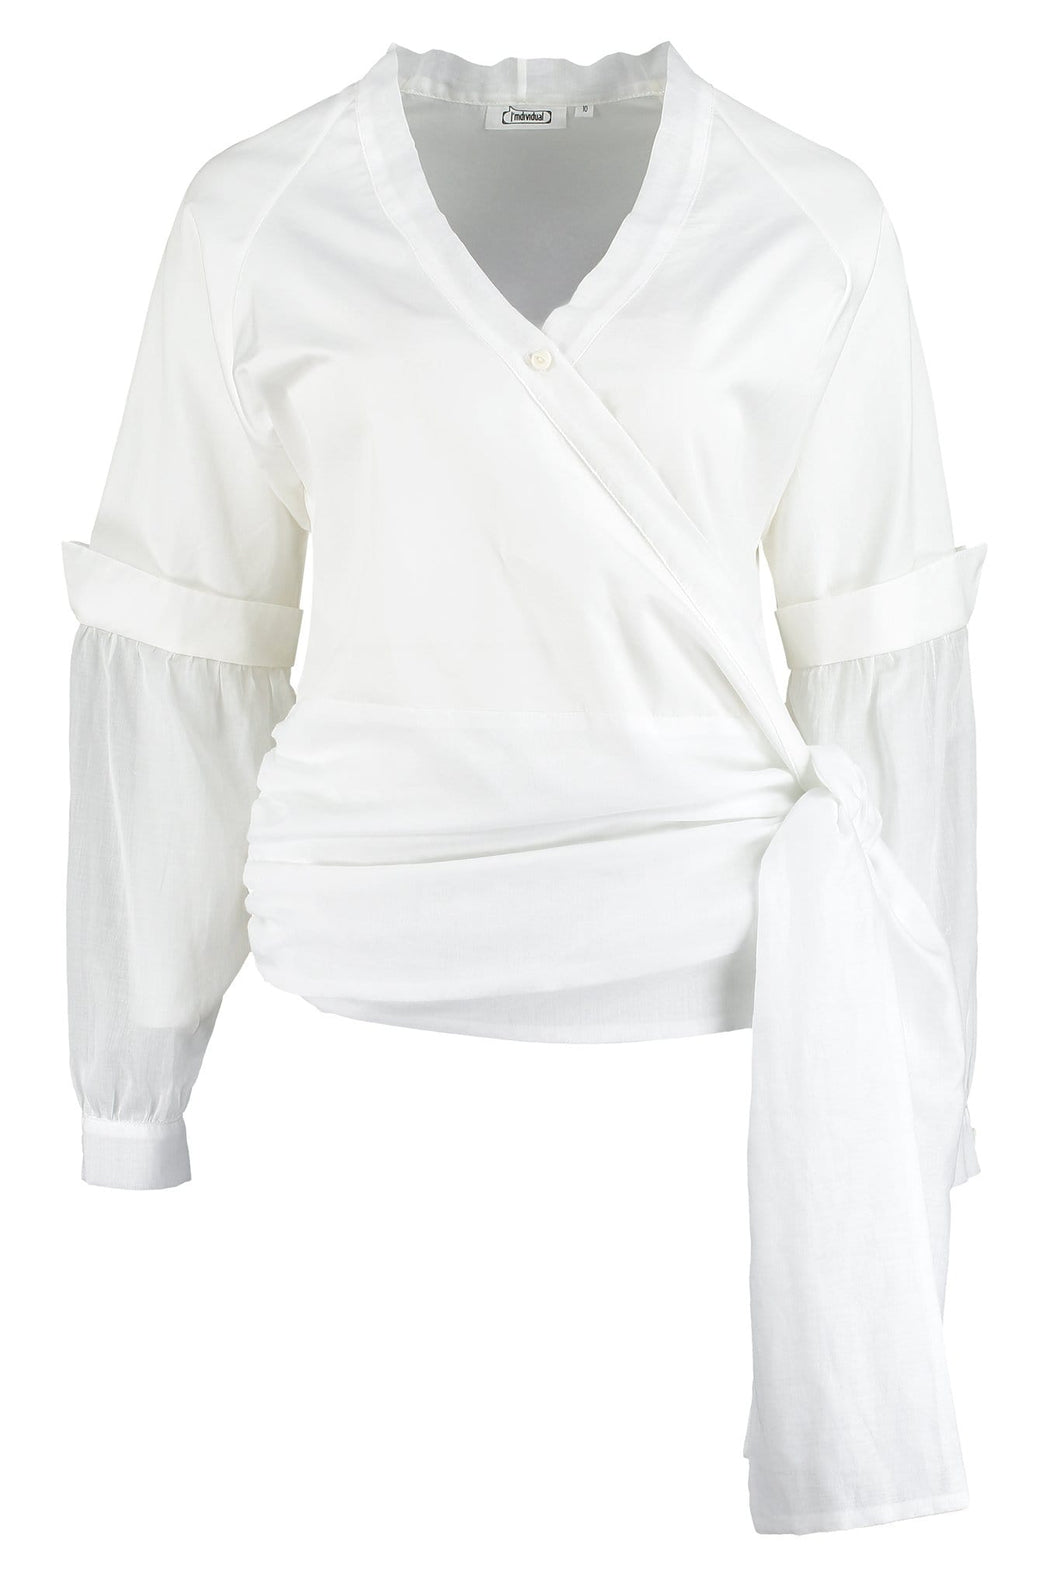 Organic Cotton Wrap Shirt - I'mdividual